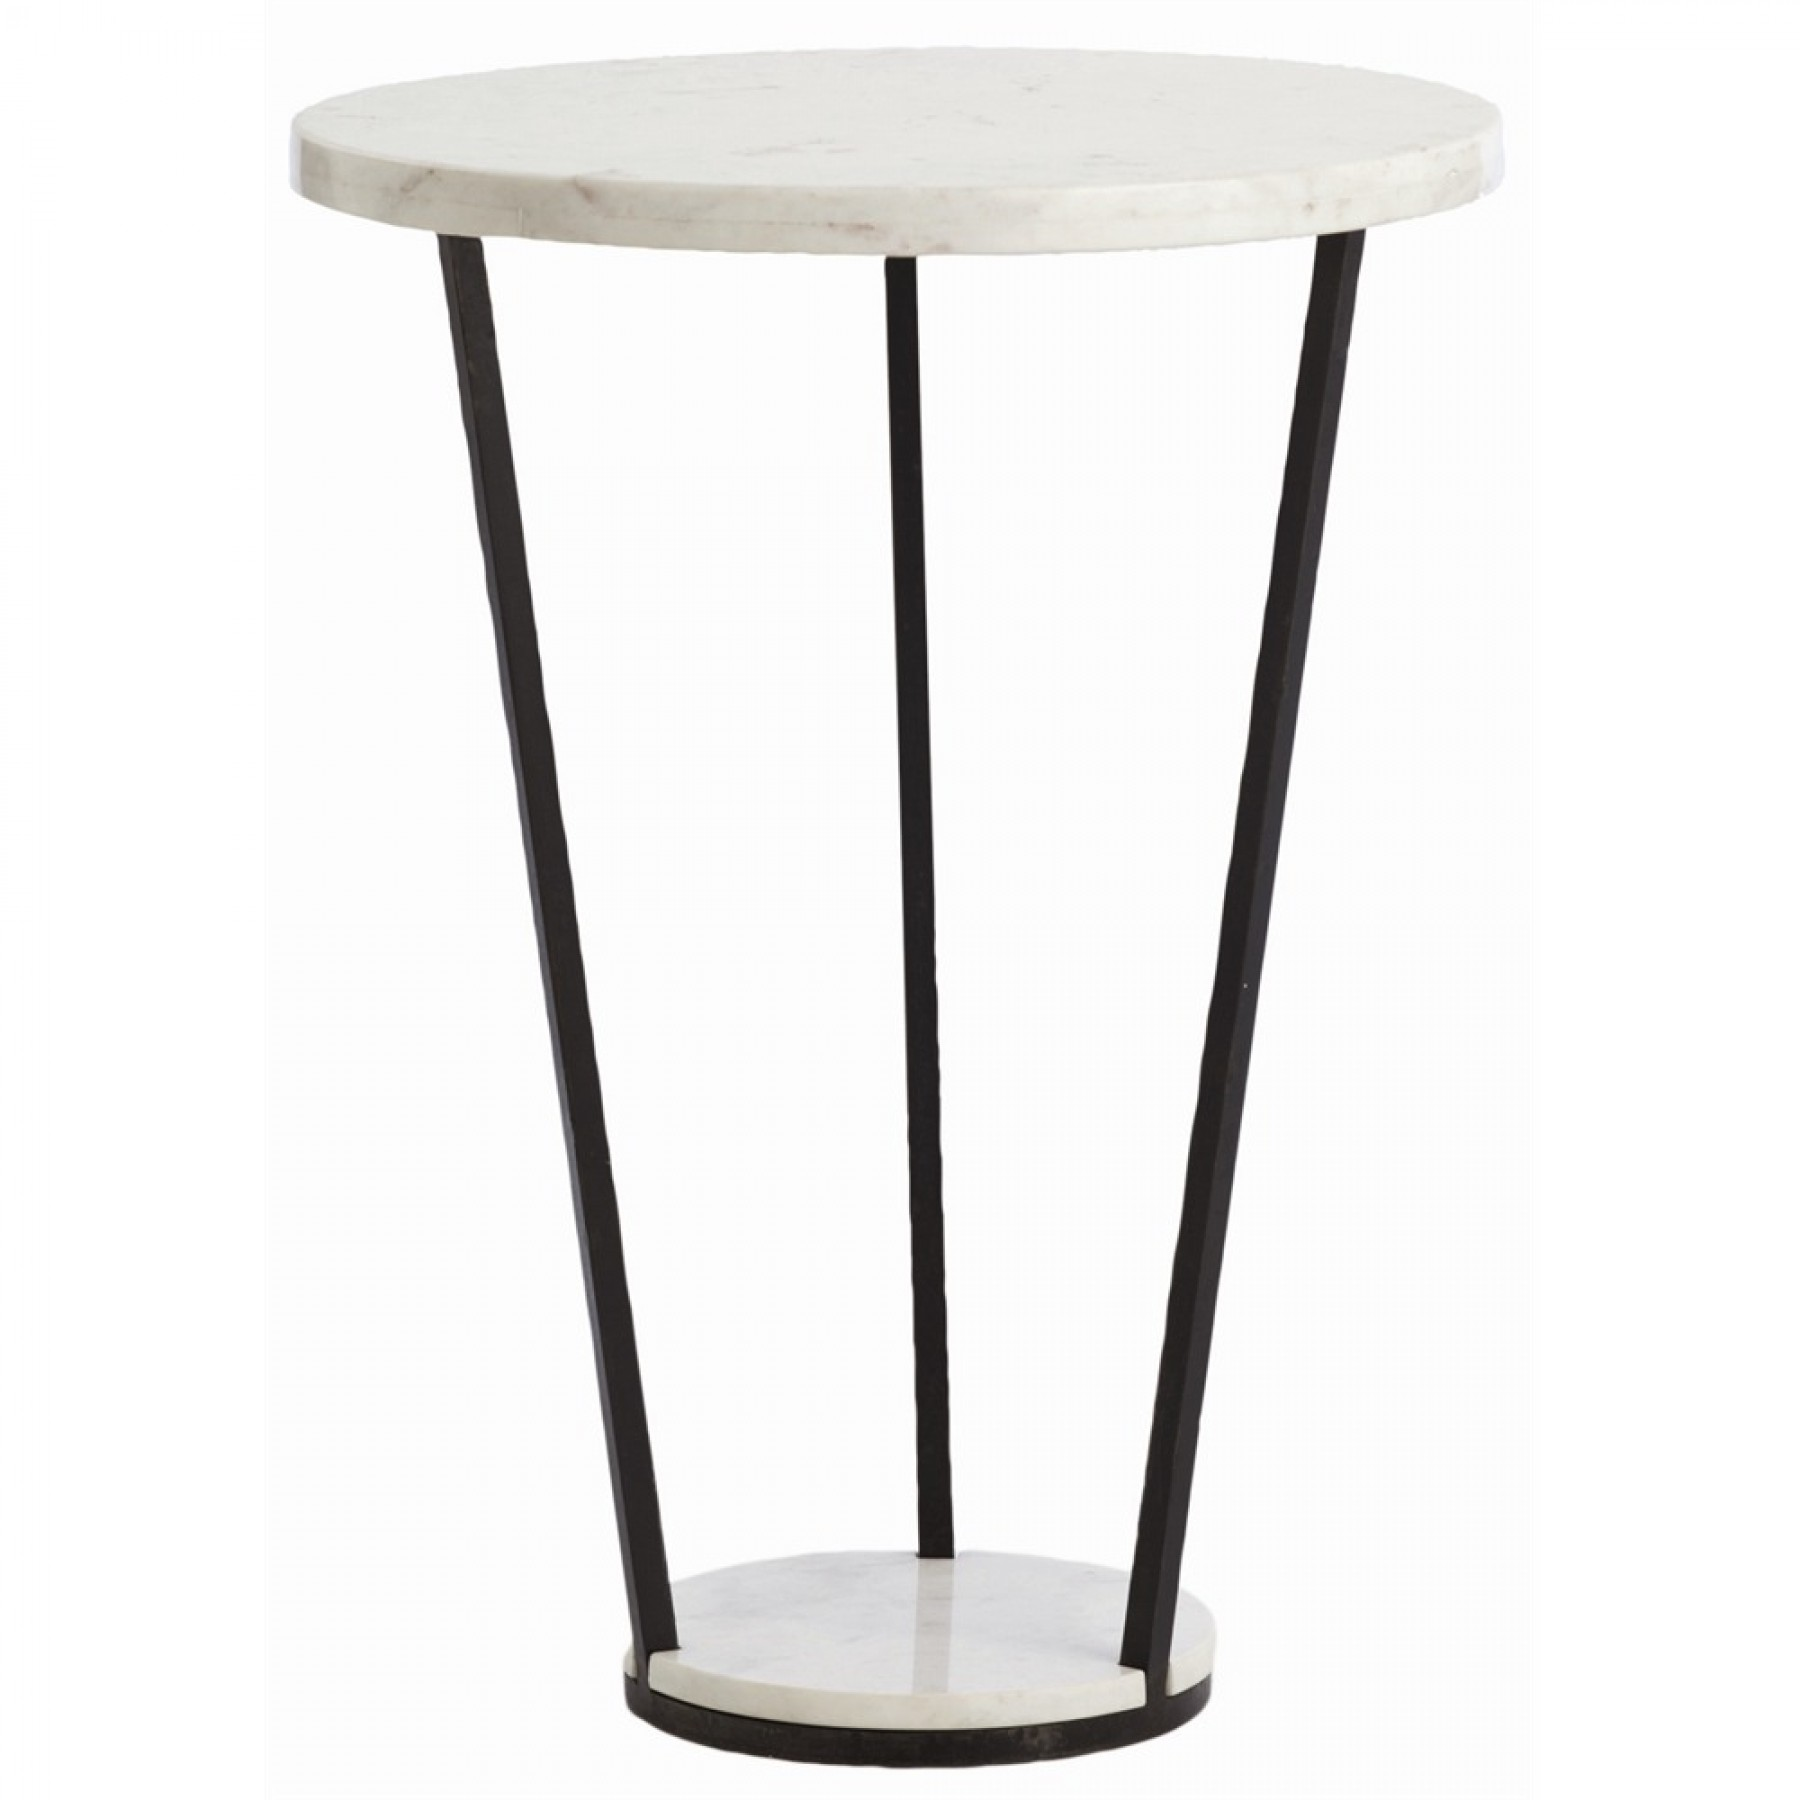 petra side table white accent ginger jar lamps green porcelain vita lampen chandelier lamp shades gray brown end tables jofran short skinny black round dining pearl drum stool